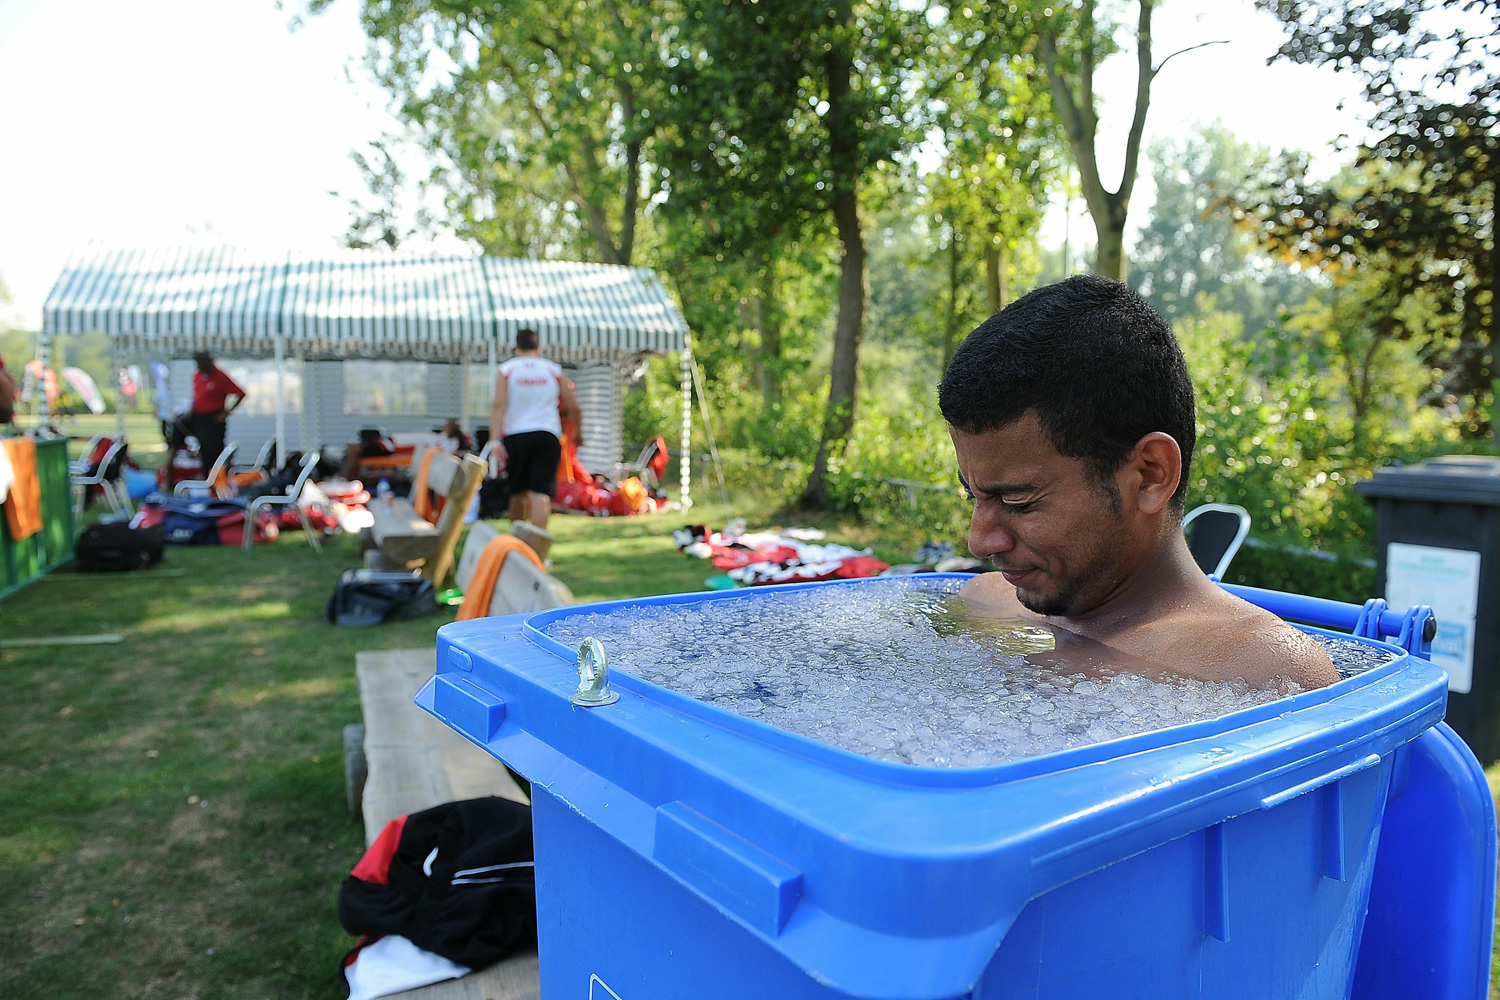 First class cricketer Manny Aulakh sits in an ice bath up to his shoulders during the ICC World Cricket League Division One match between Canada and Kenya.